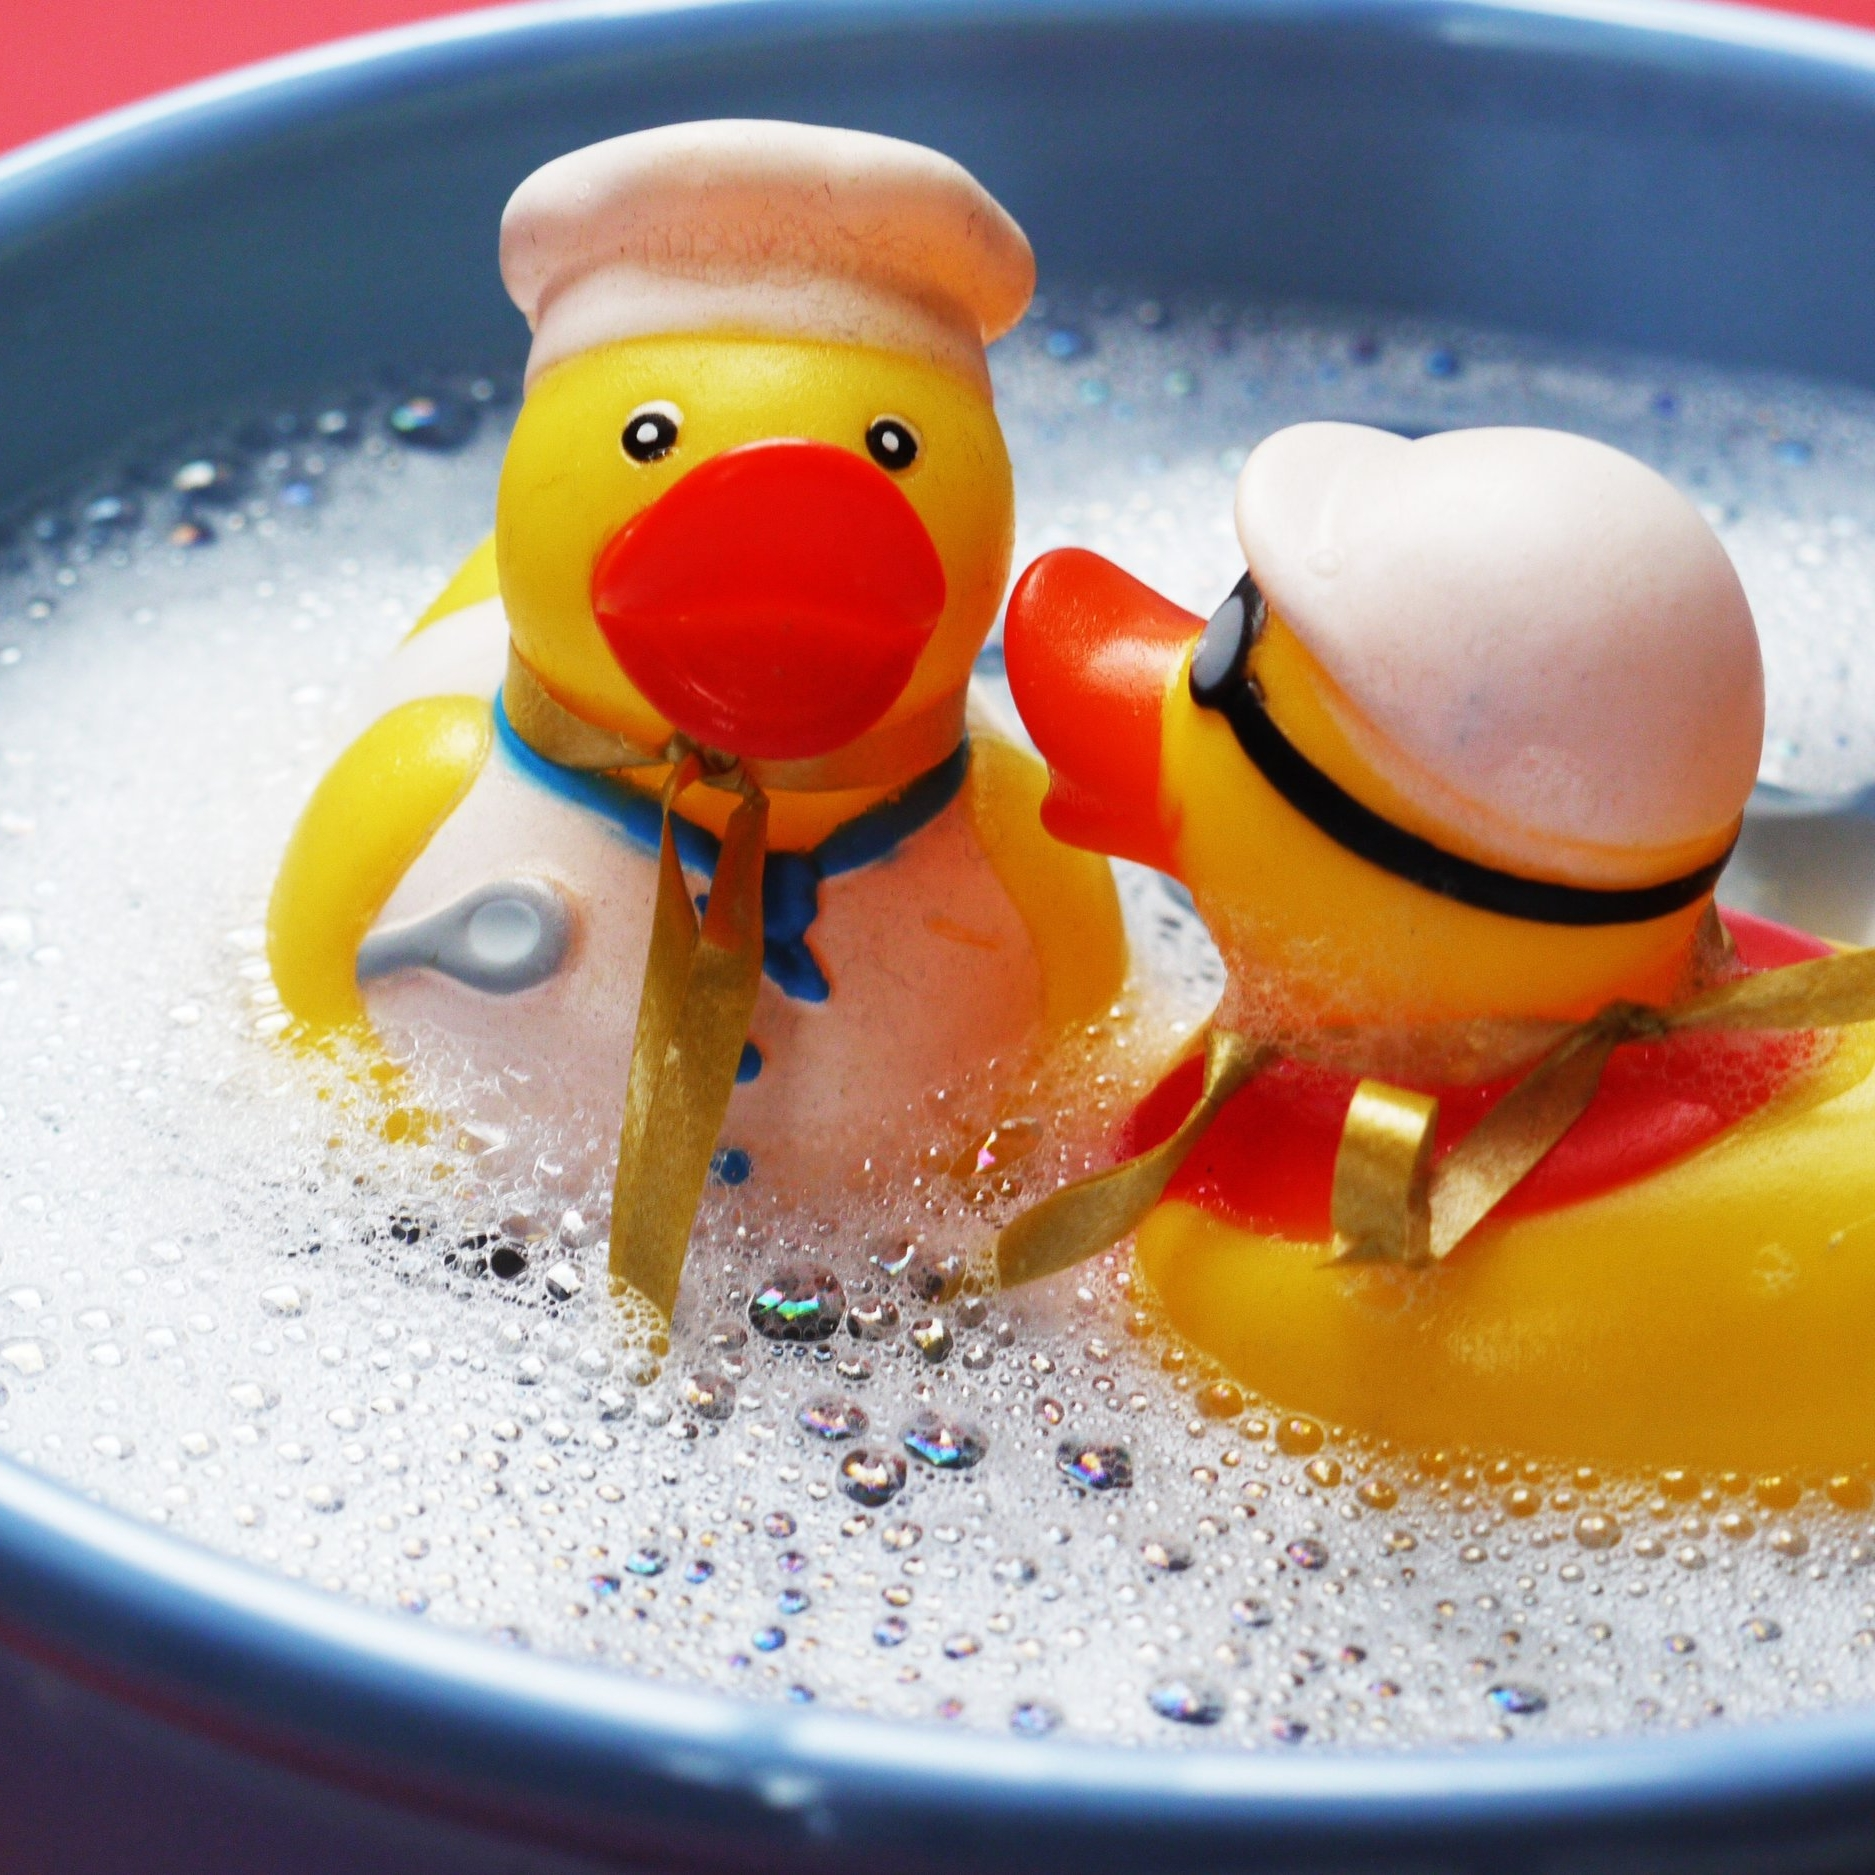 floating-rubber-ducks-soap-bubbles-160992.jpg